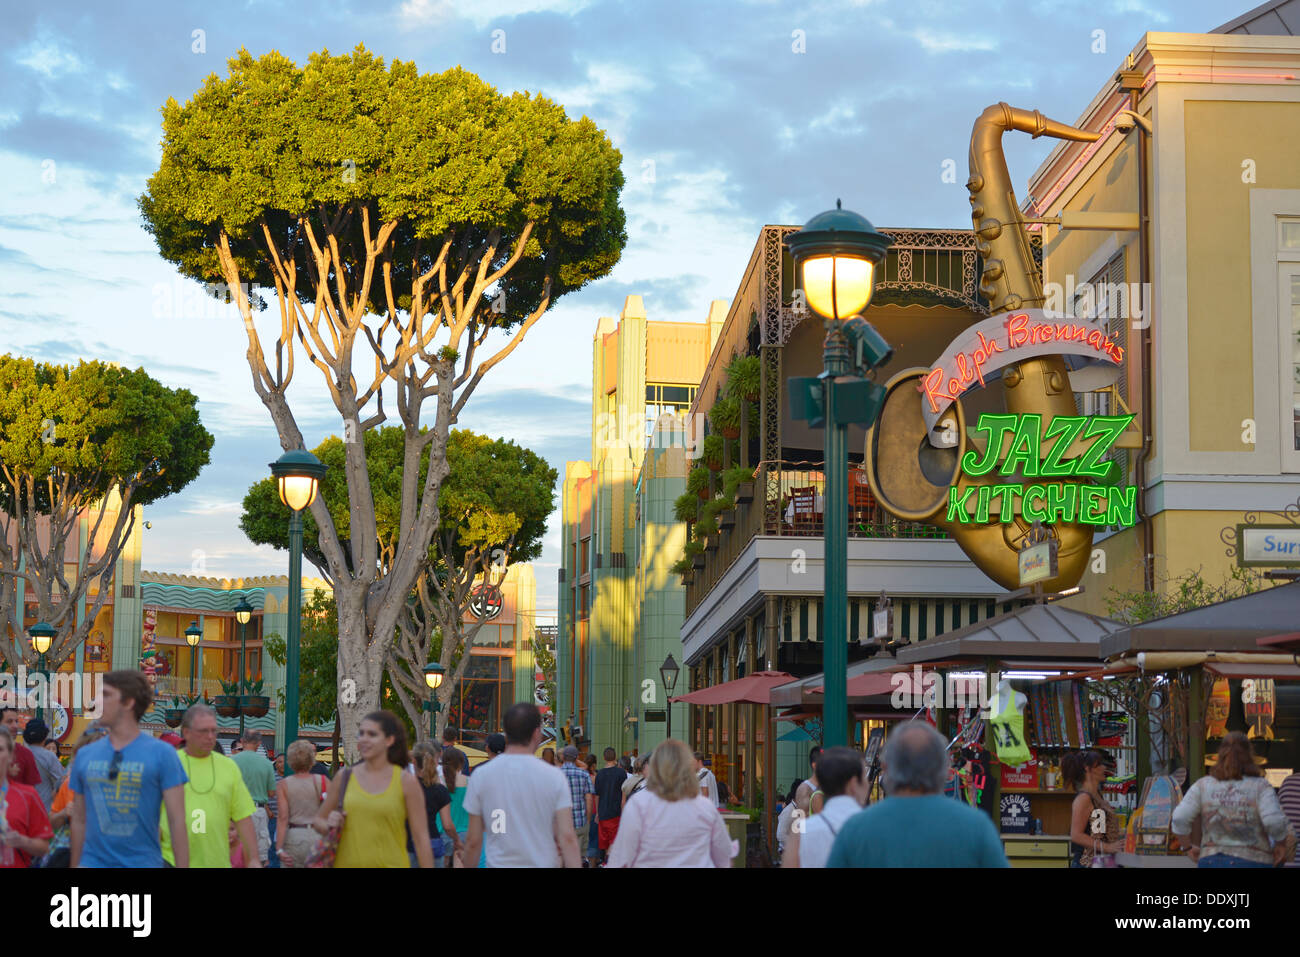 Disneyland, Downtown Disney, Restaurant Jazz Kitchen, And Shops Anaheim,  California